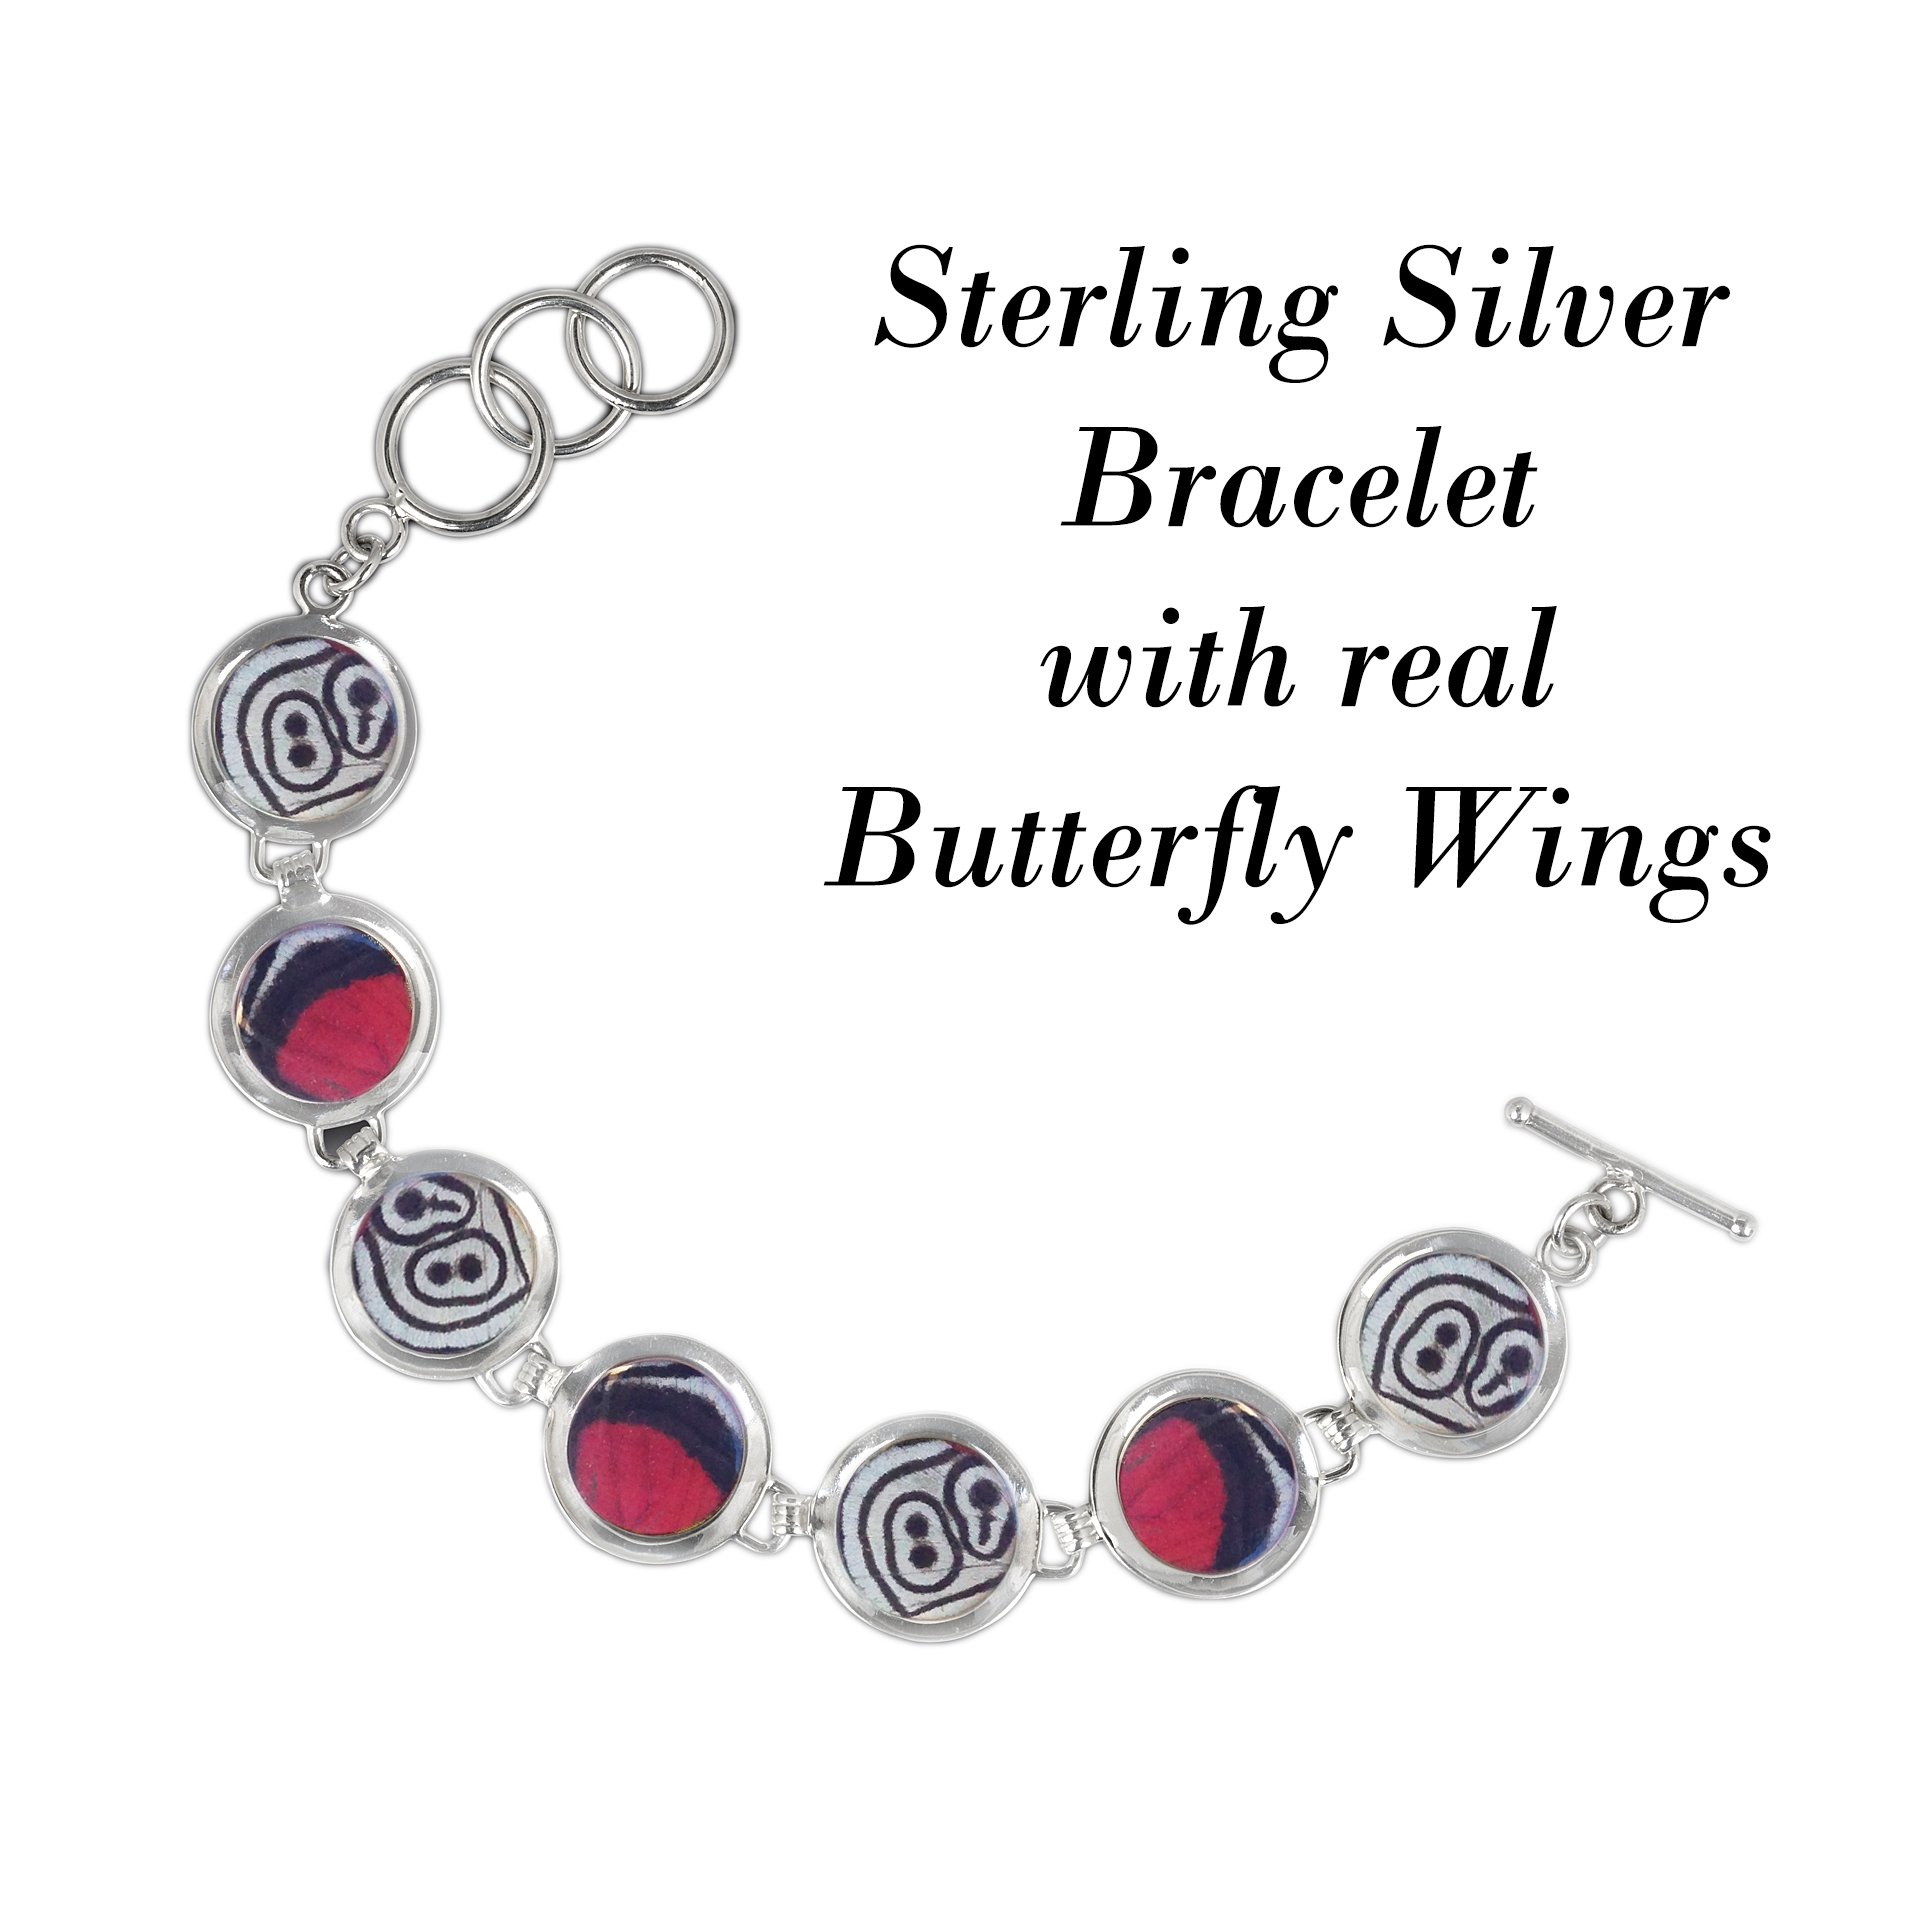 Real Butterfly Sterling Silver Bracelet - Natural, Colorful, Recycled, Sustainable, Bold, Red